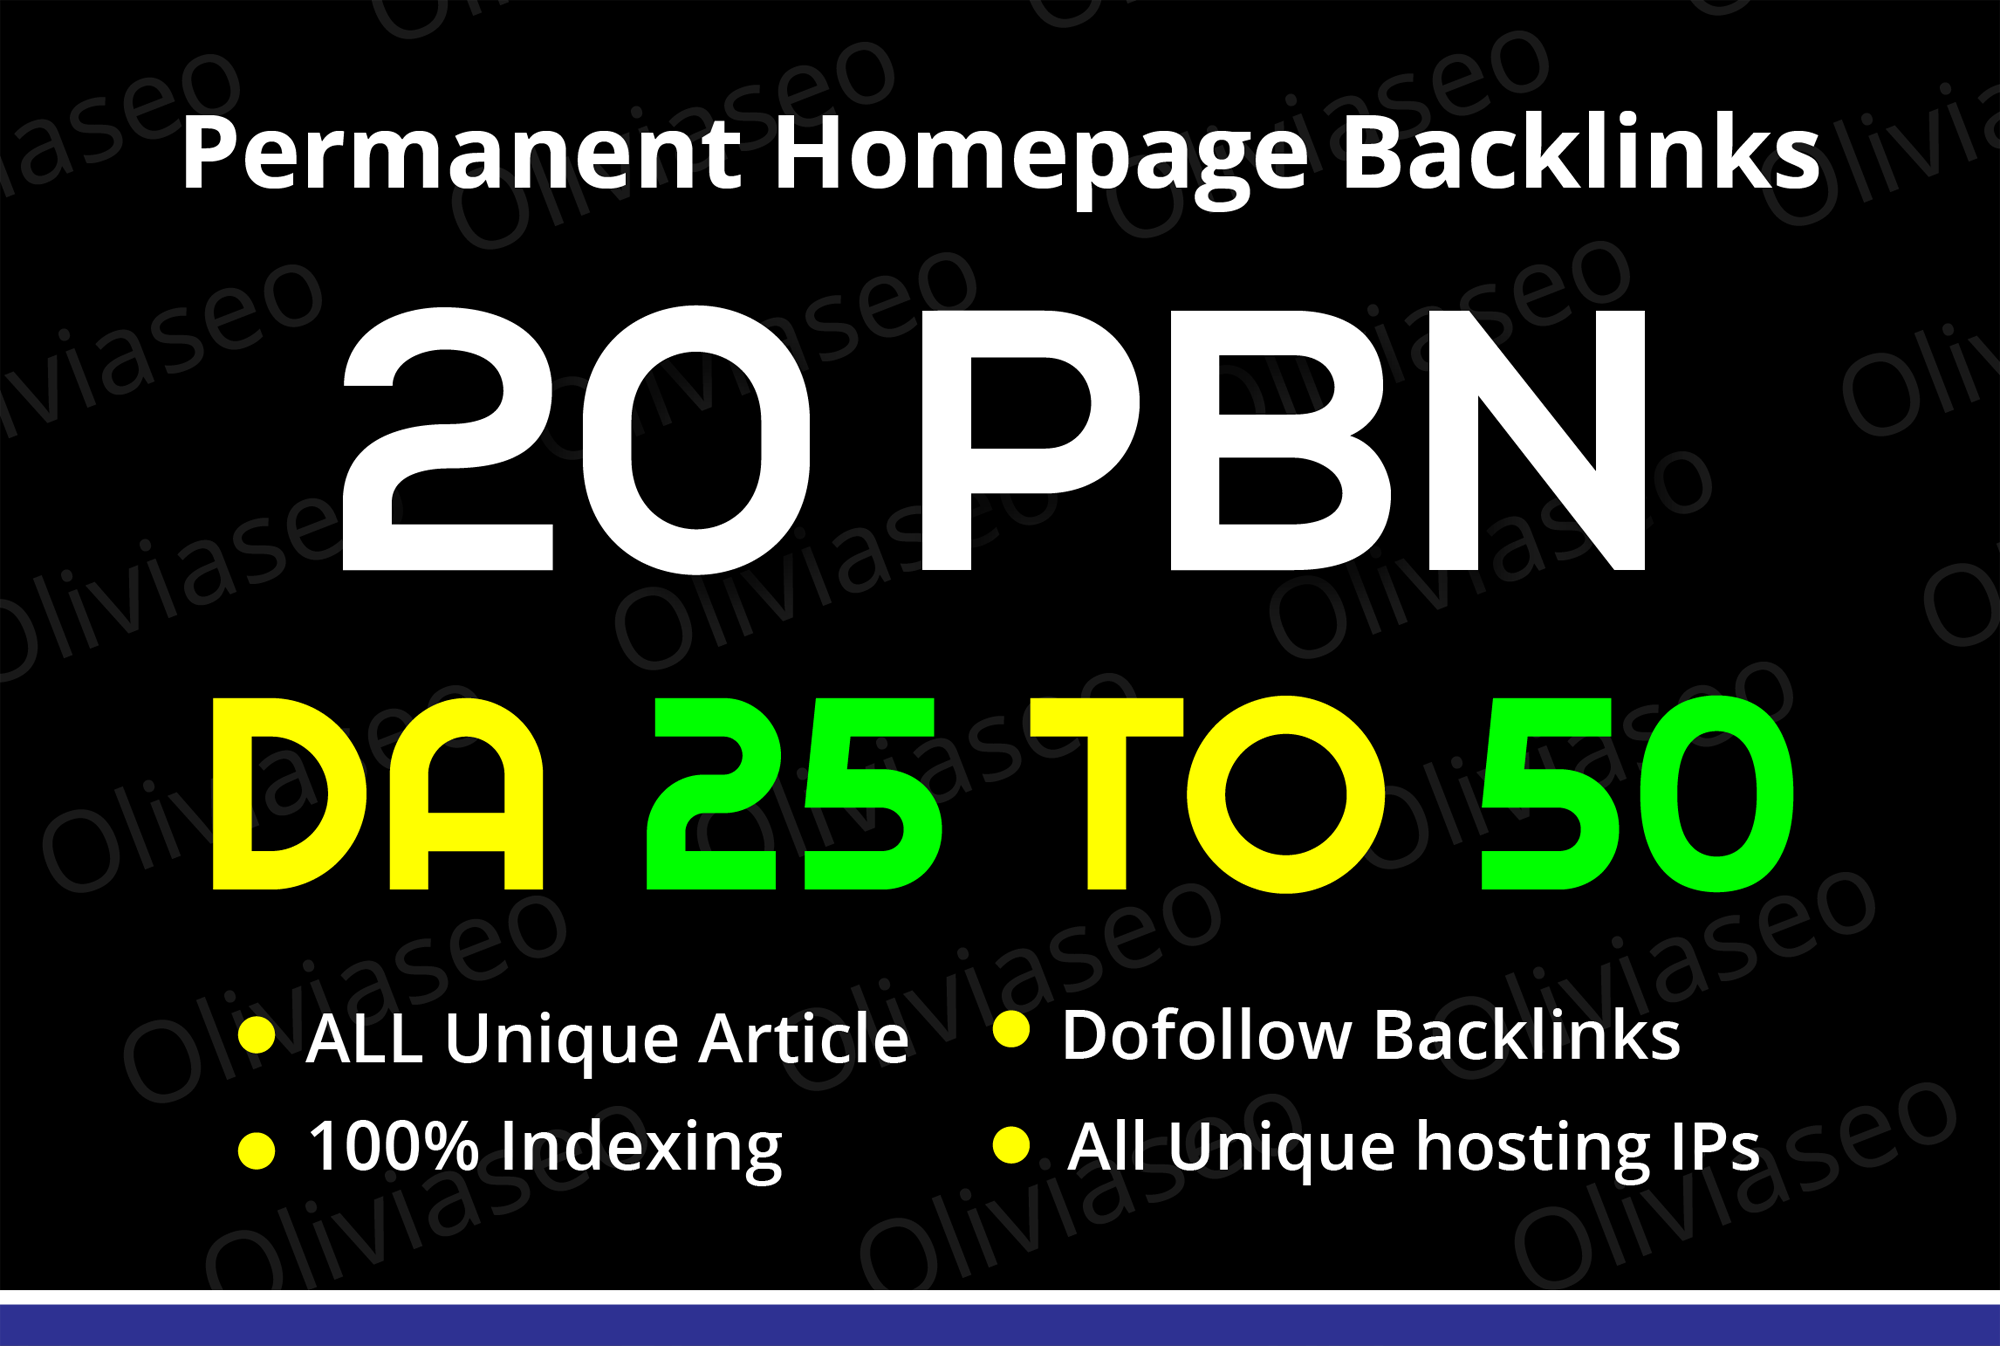 I will build 20 PBN permanent homepage DA 25 TO 50 dofollow backlinks off page seo